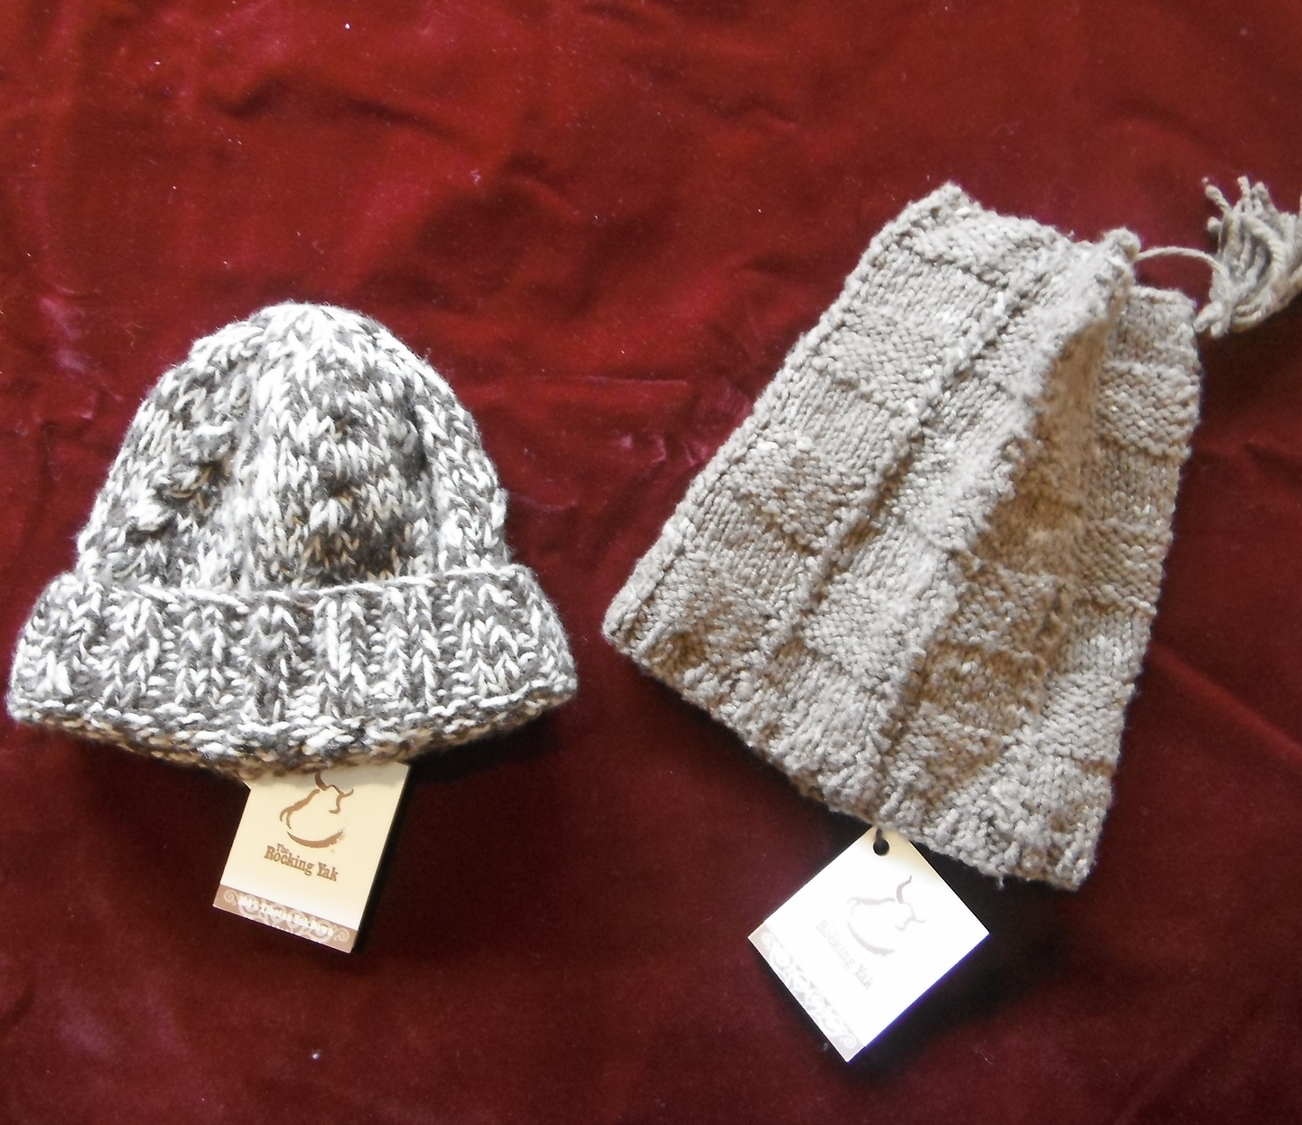 <p>Rocking Yak Knitted Yak Wool Hats&nbsp;</p>